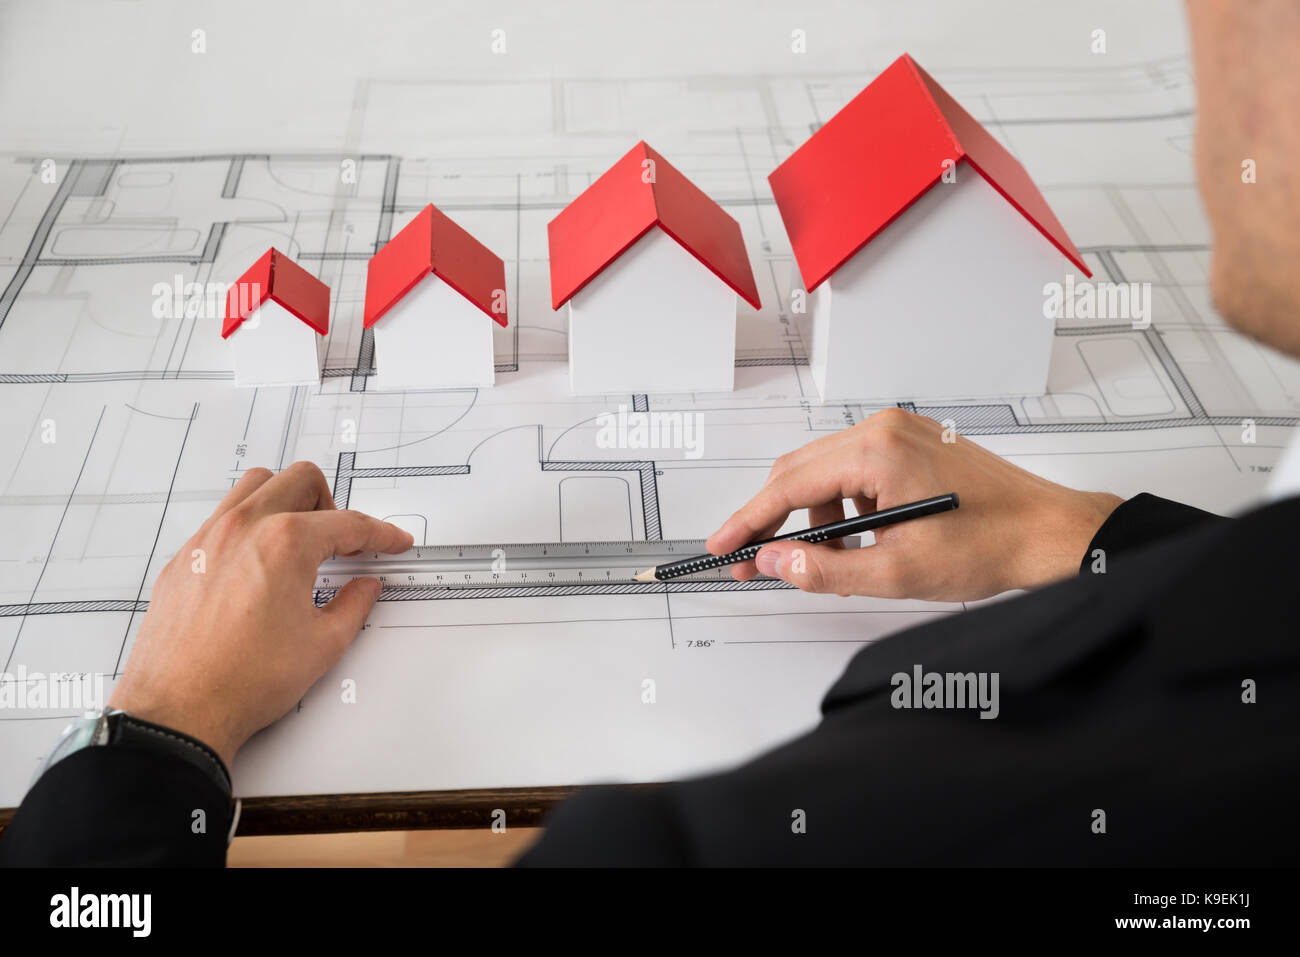 Close-up Of Architect With Different Size House Models On Blueprint In Office - Stock Image